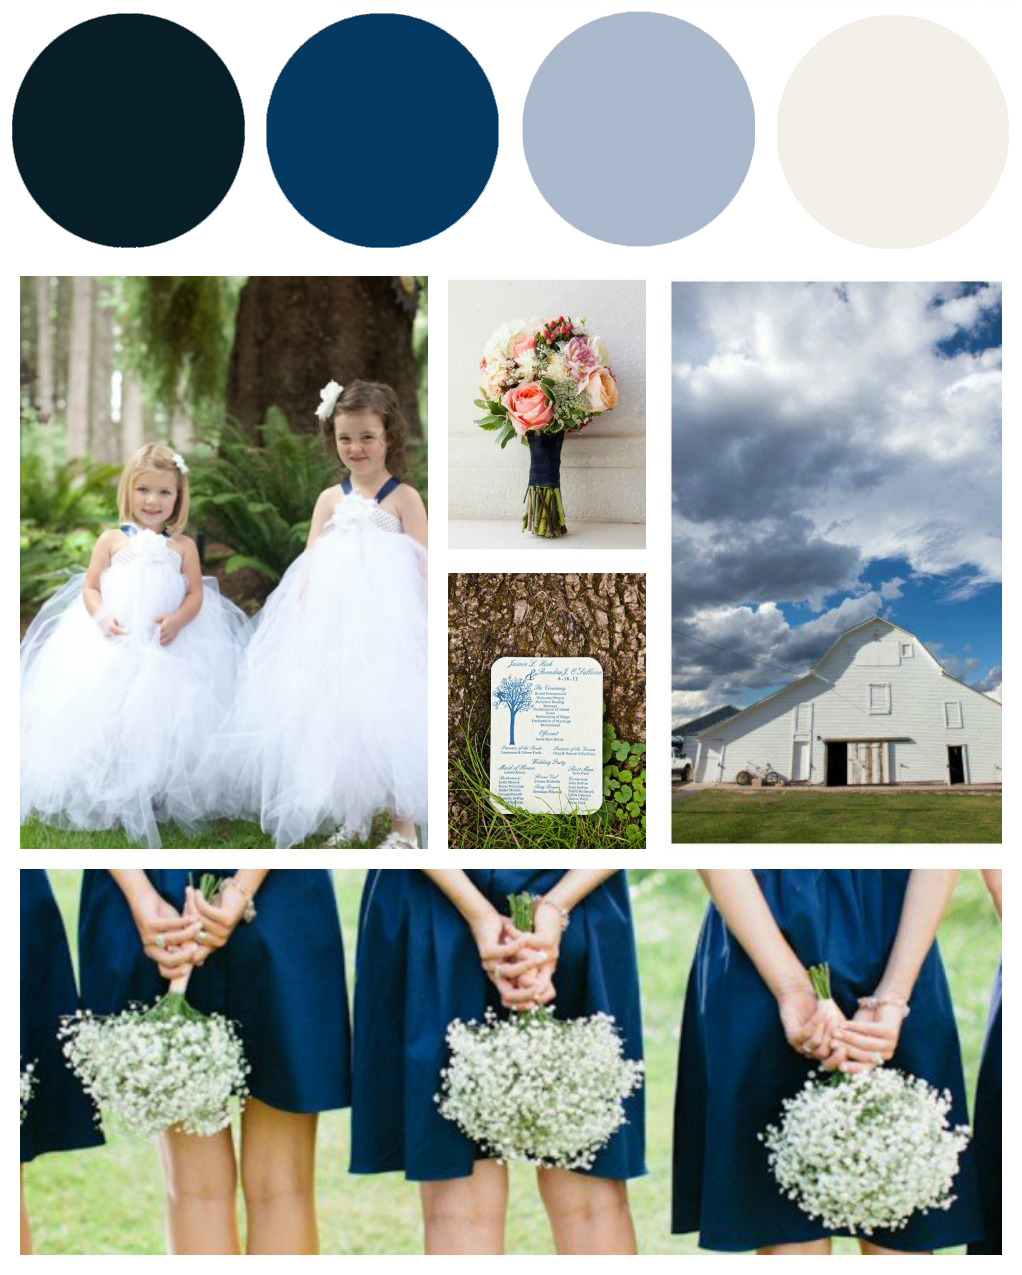 Wedding Themes And Colors: Blue & White Wedding Colors